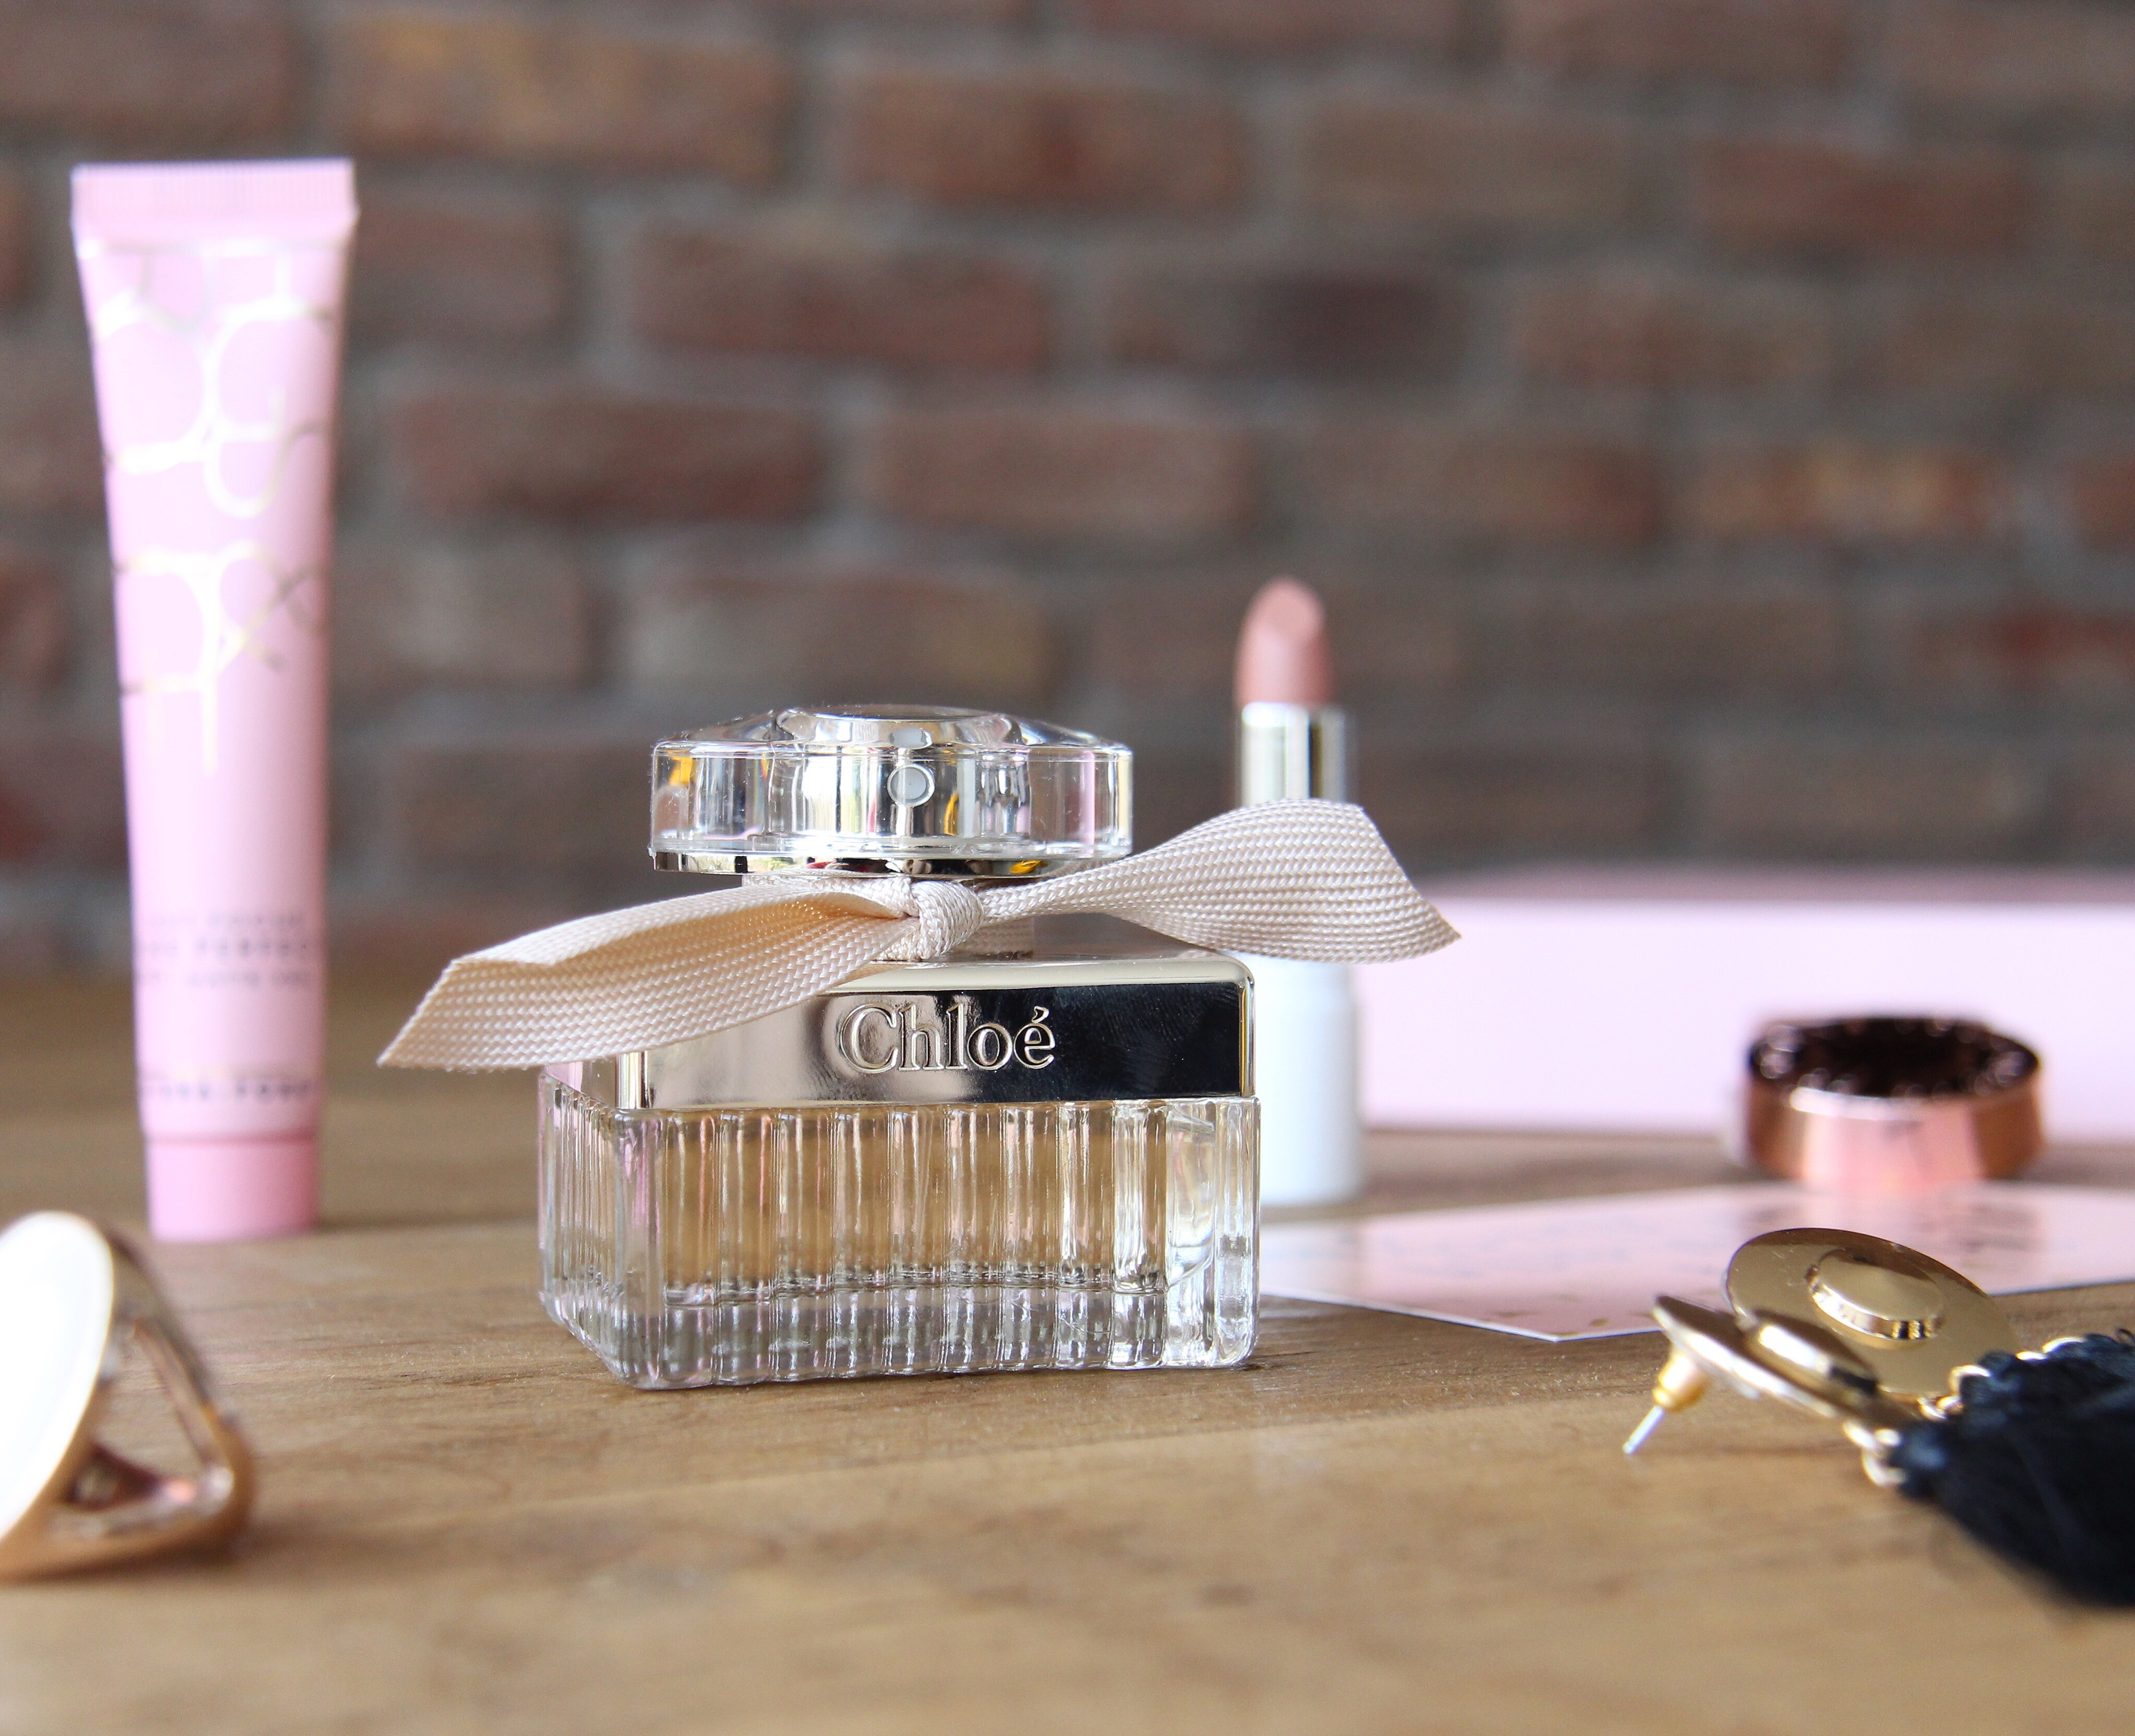 Chloe eau de Parfum : An iconic fragrance for a free spirit